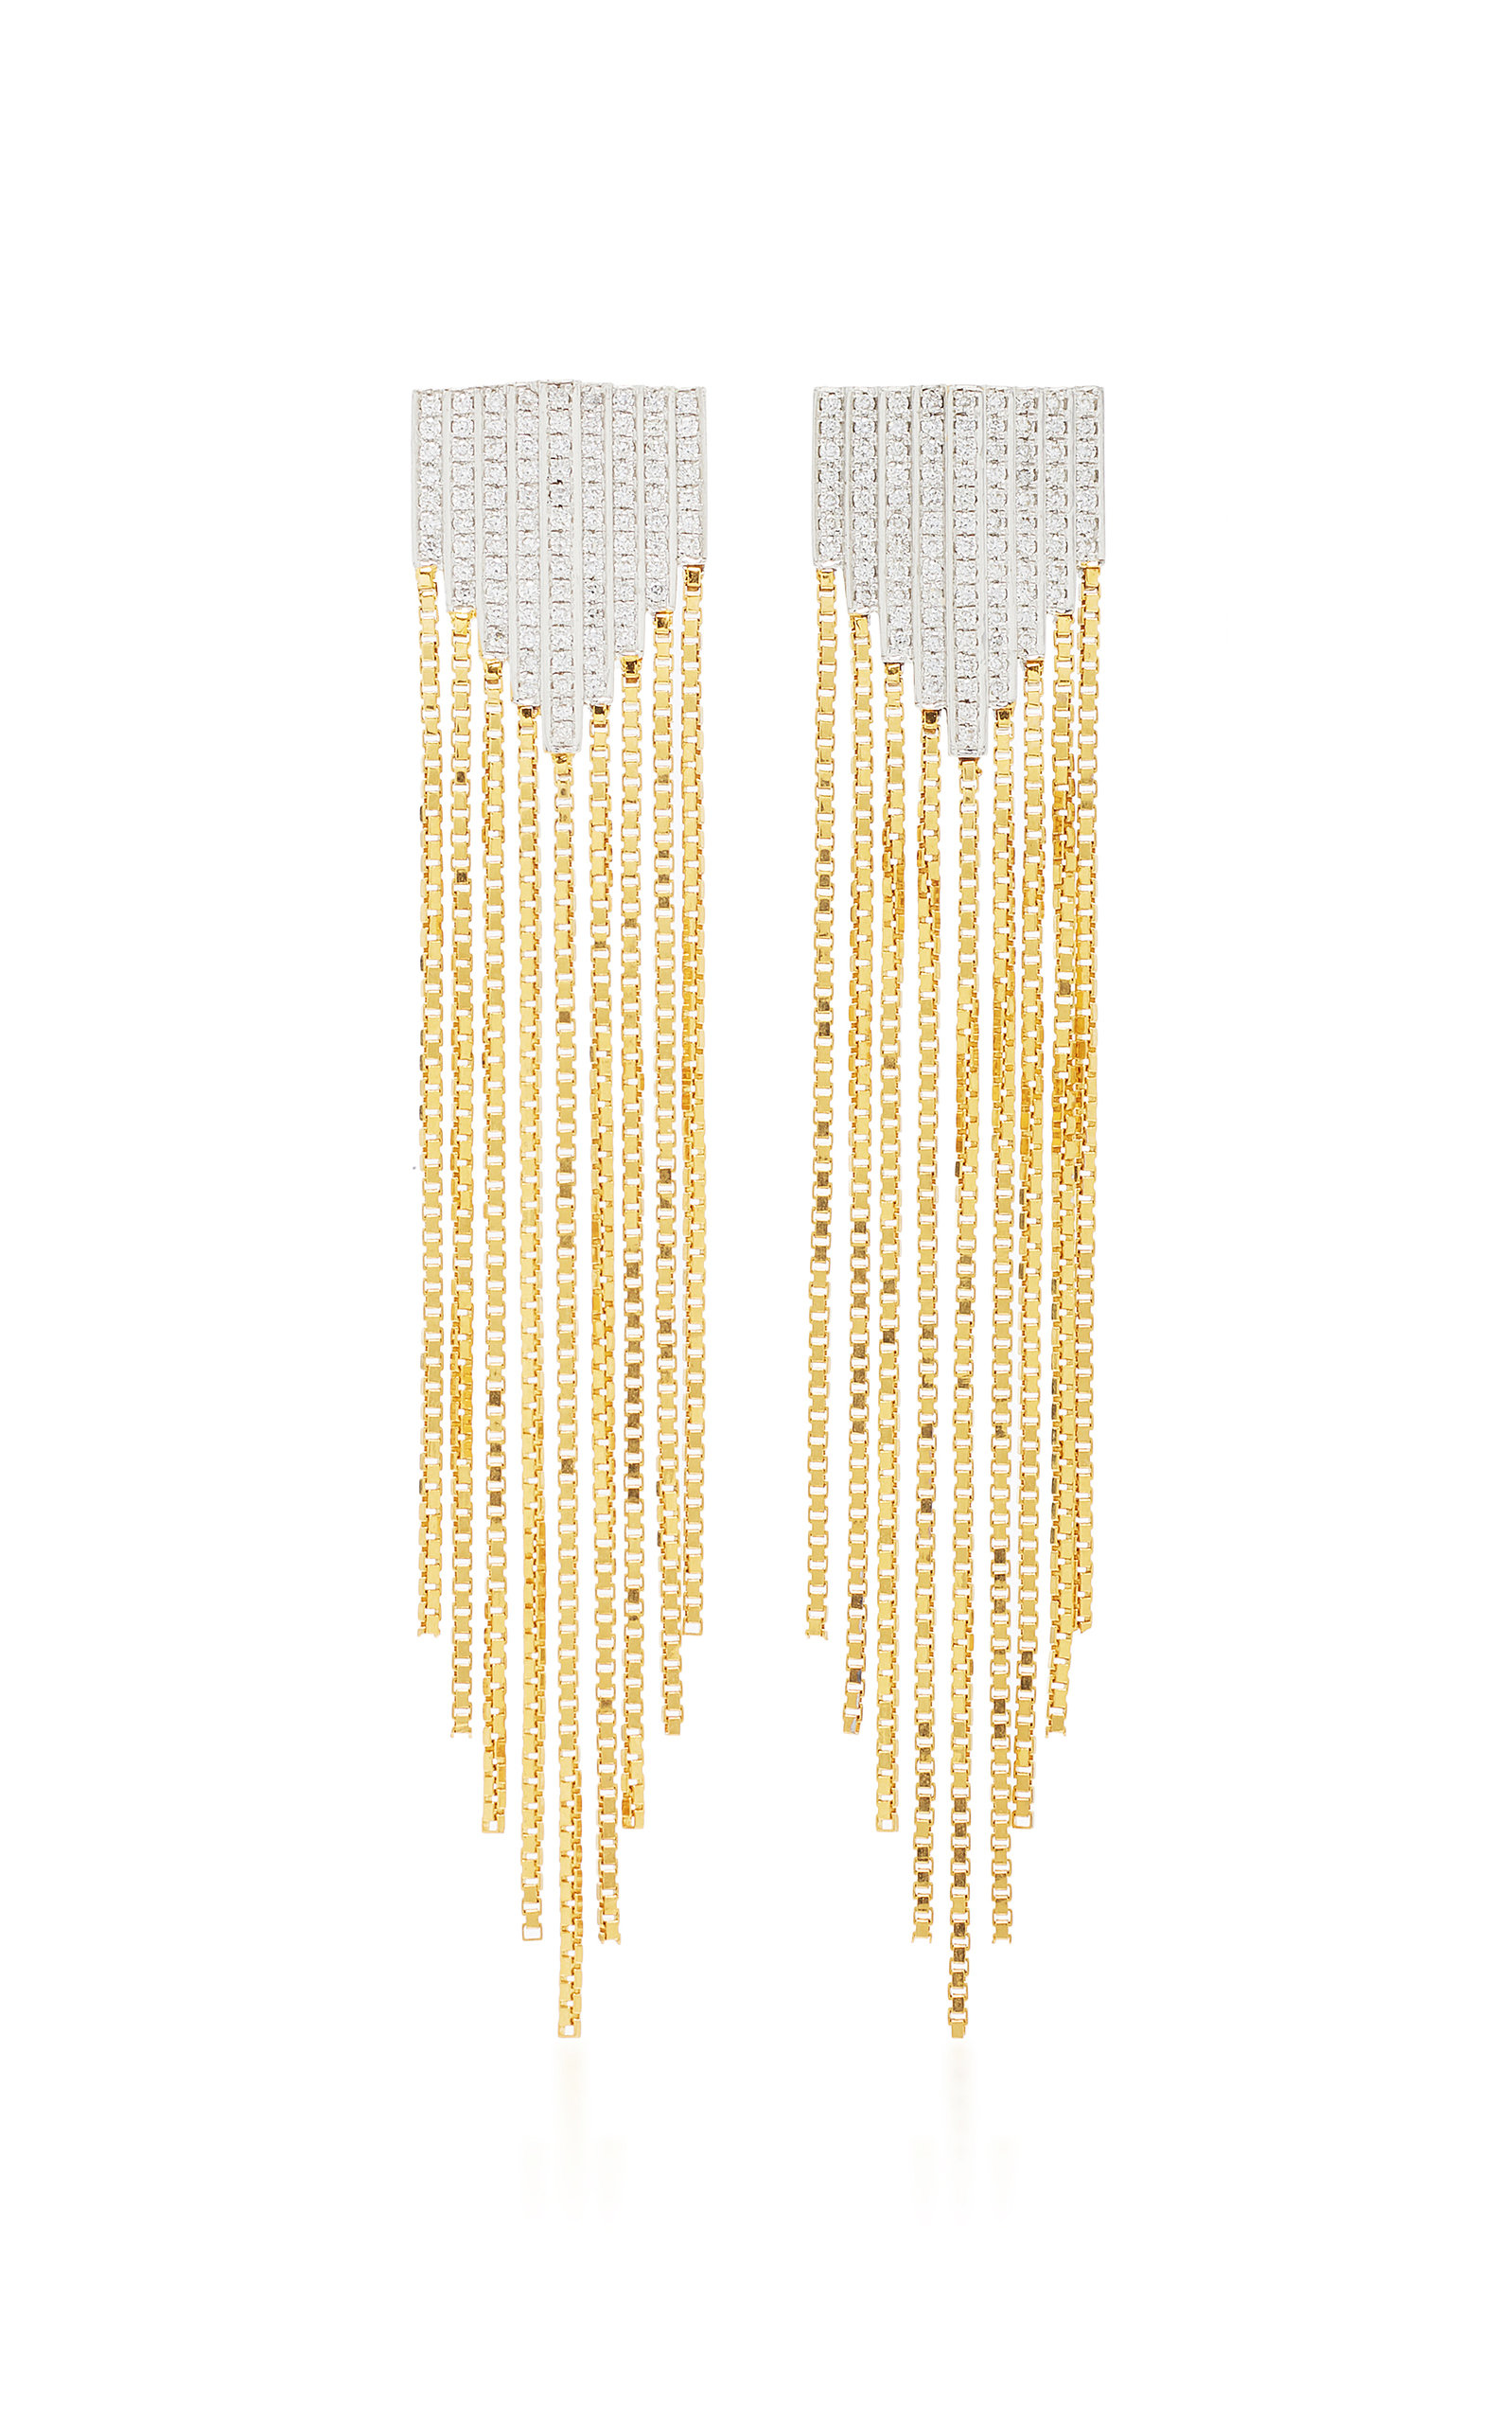 MAHNAZ COLLECTION LIMITED EDITION 18K GOLD AND DIAMOND FRINGE EARRINGS UNSIGNED